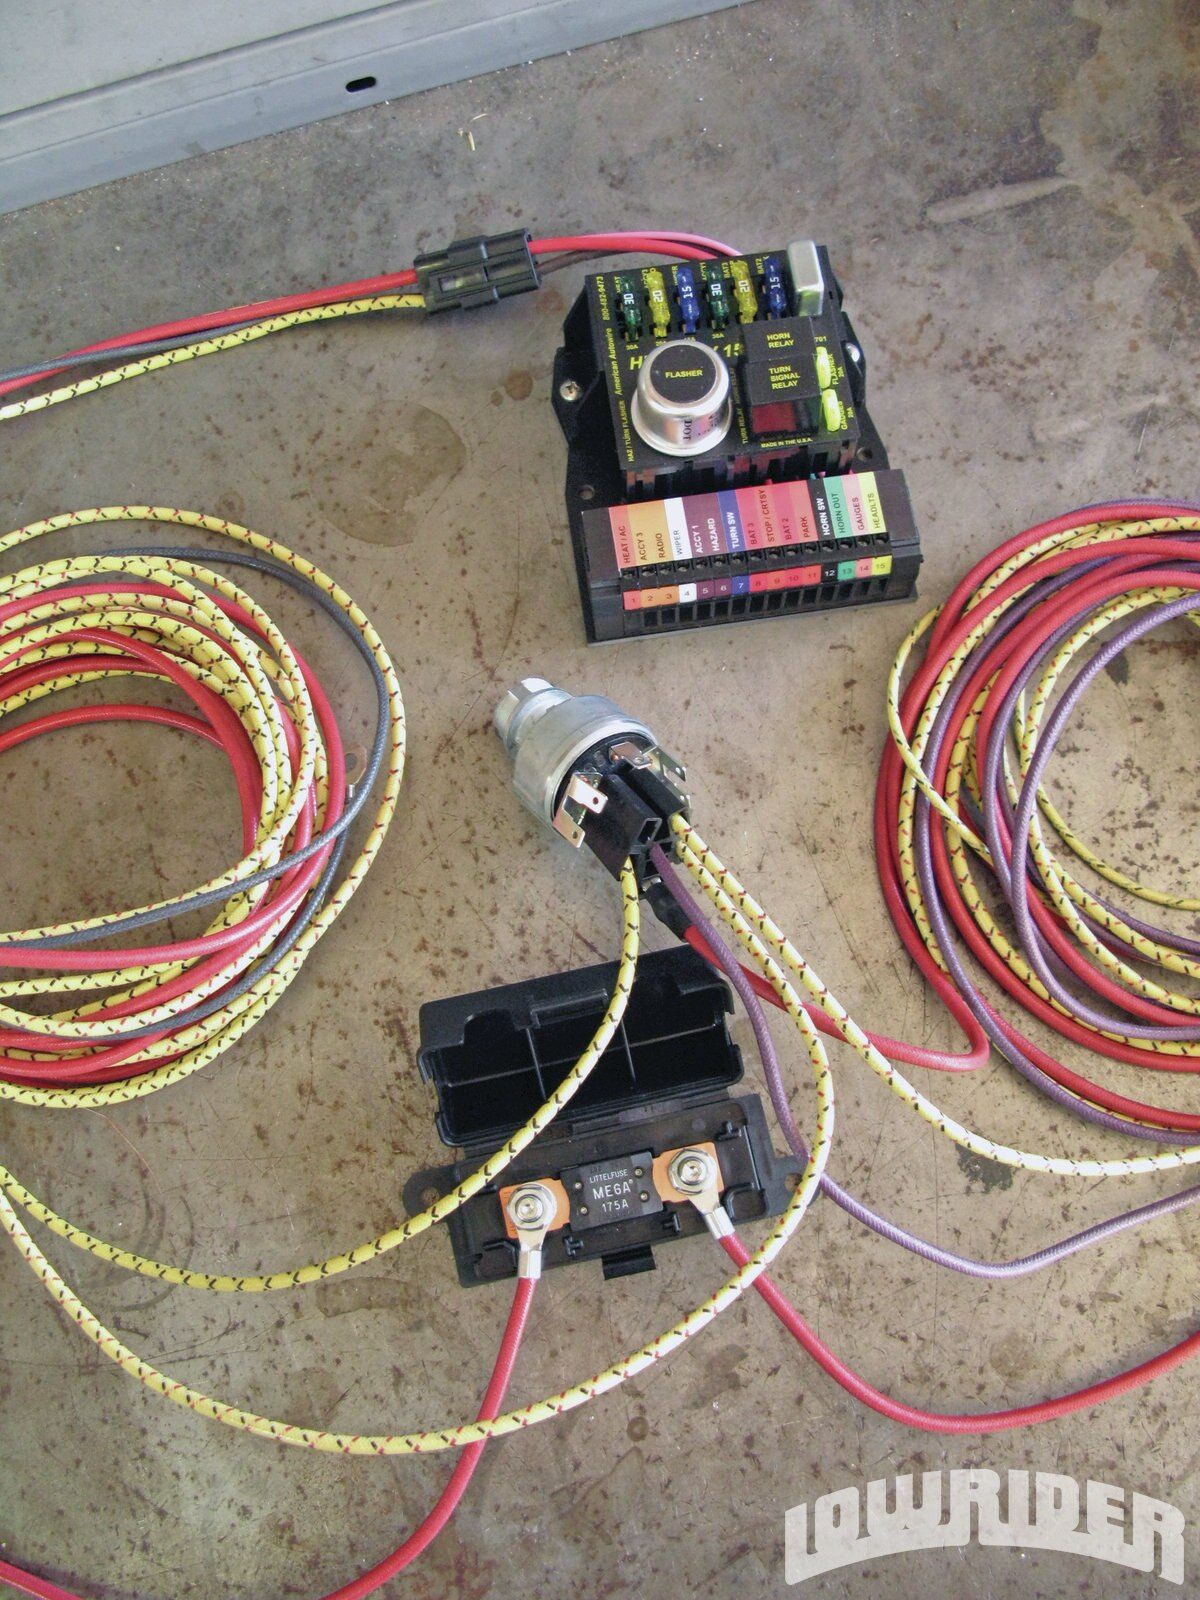 1304 lrmp 02 o american autowire highway 15 wiring wiring american autowire highway 15 nostalgia wiring kit lowrider magazine highway 22 wiring diagram at crackthecode.co